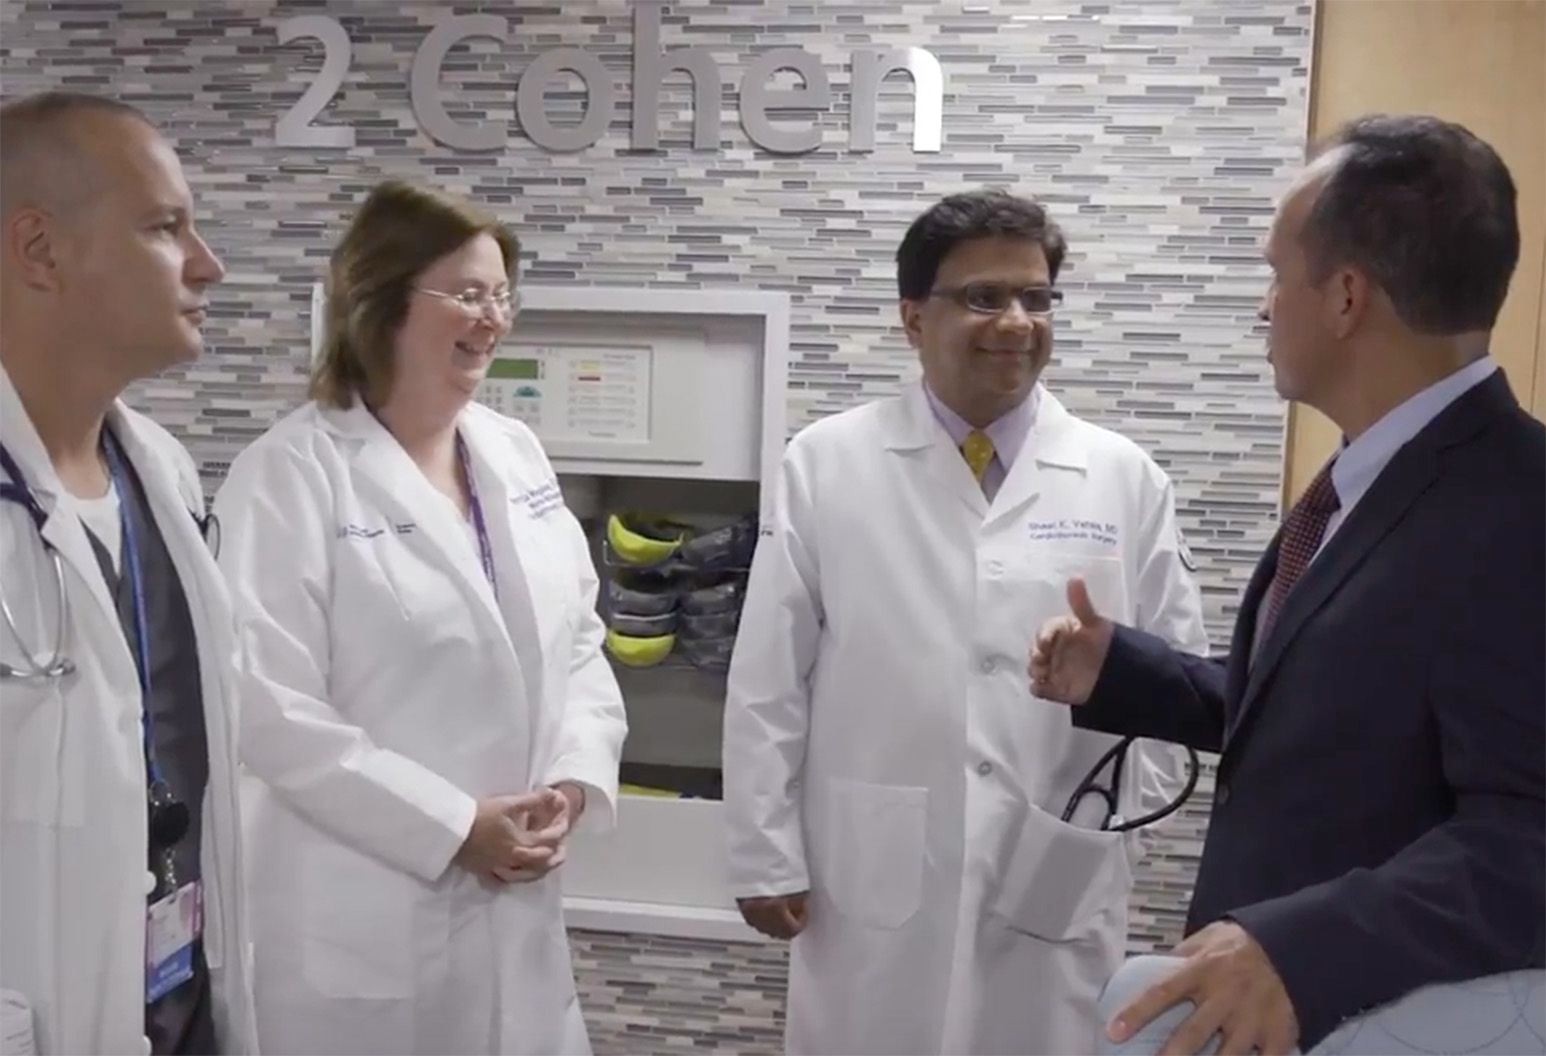 Two male doctors and one female doctor in white coats speak to a man in a suit.